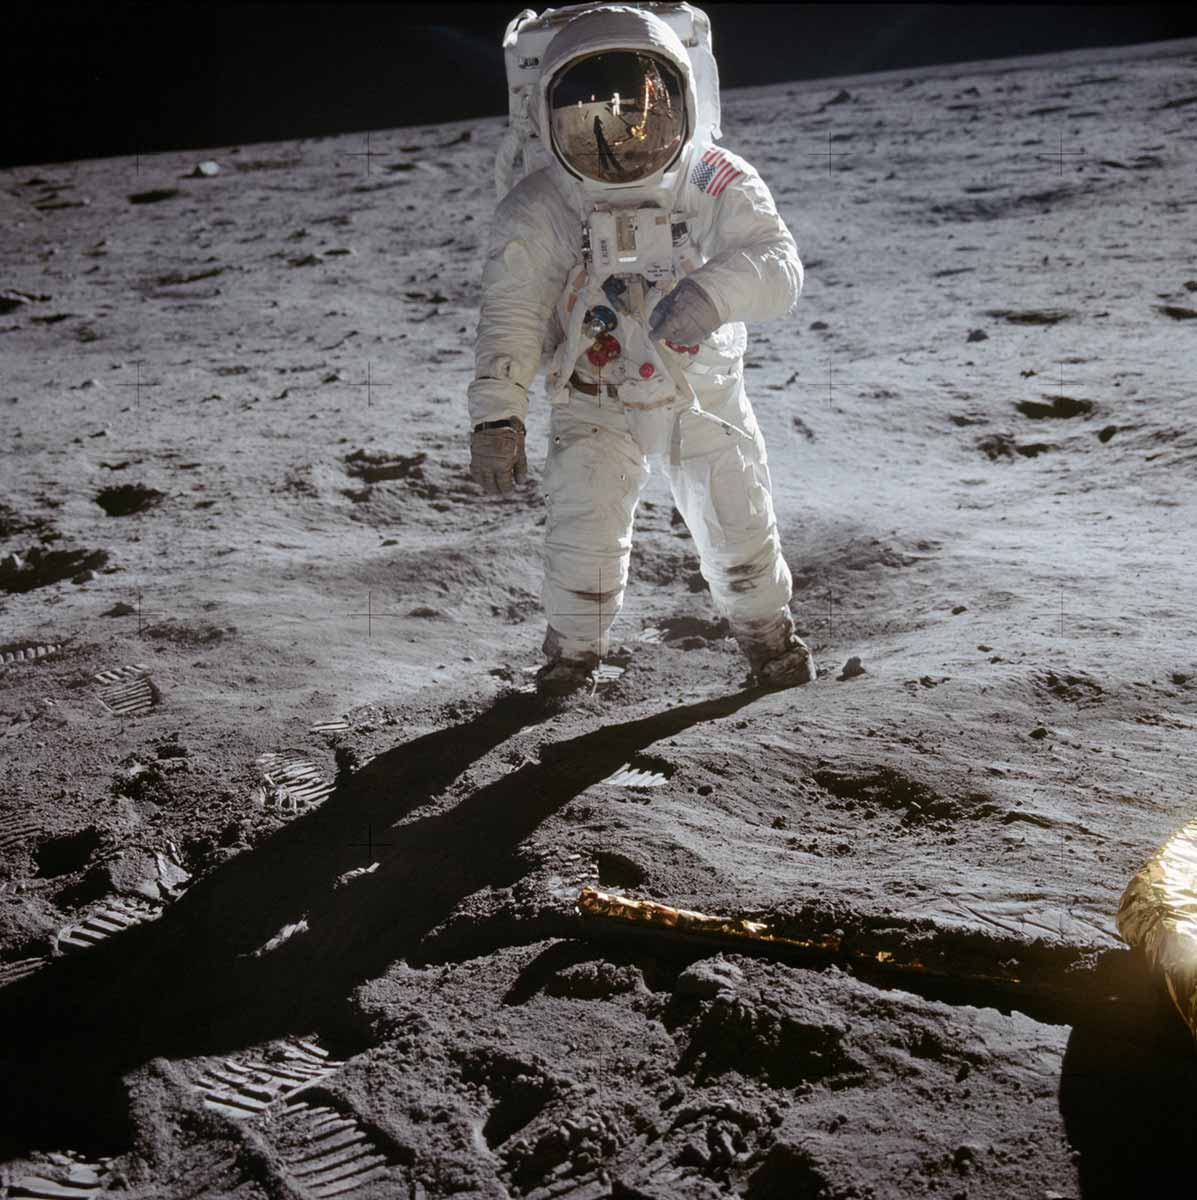 A photograph of a person, dressed in full astronaut gear, is standing on the Moon's landscape and is facing the camera. - click to view larger image